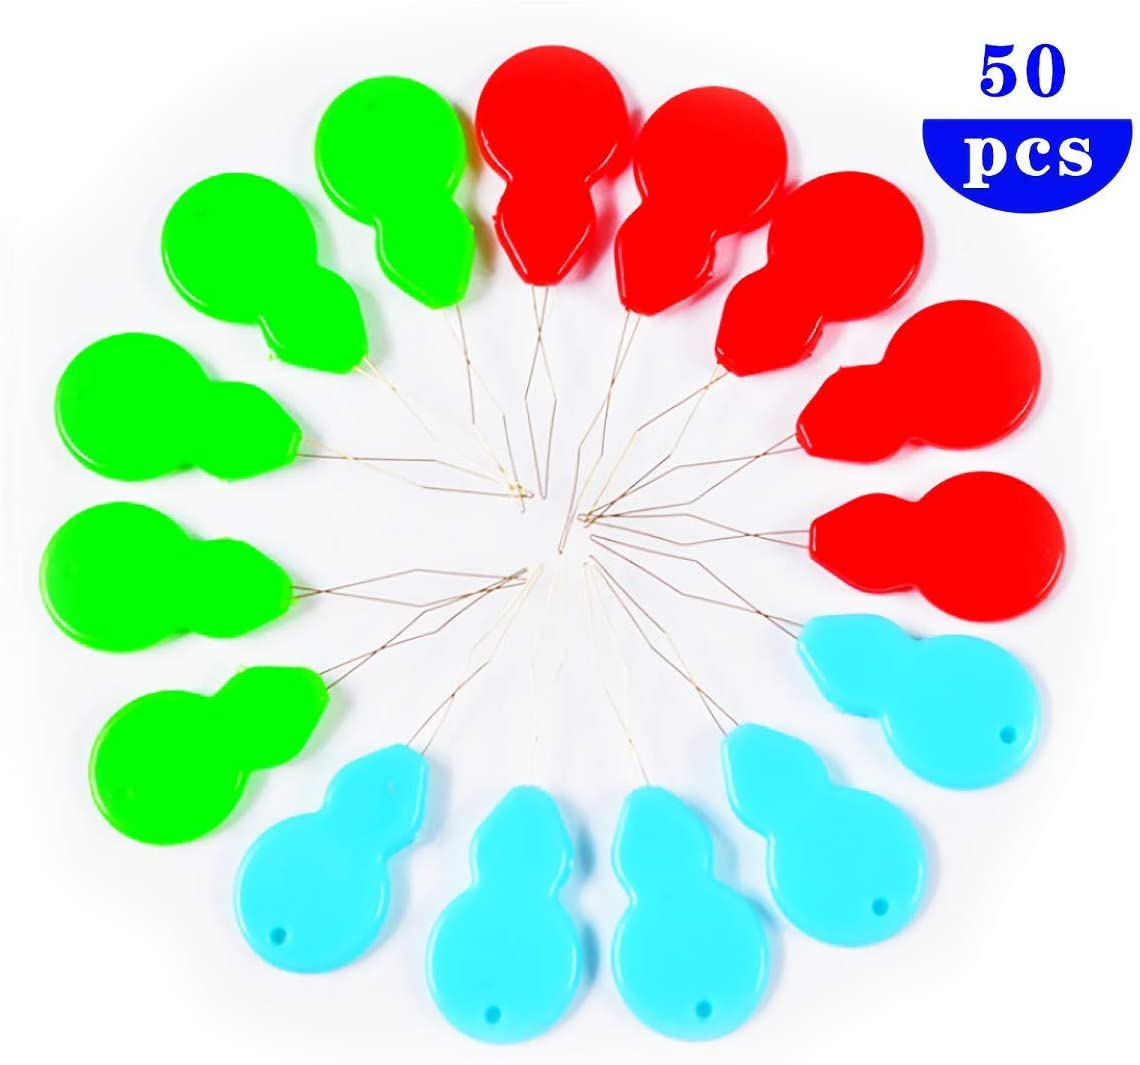 HuiYouHui 50pcs Gourd-Shaped Needle Threaders,Multicolor Stitch Insertion Hand Machine Sewing Tool, DIY Needle Threader Tool